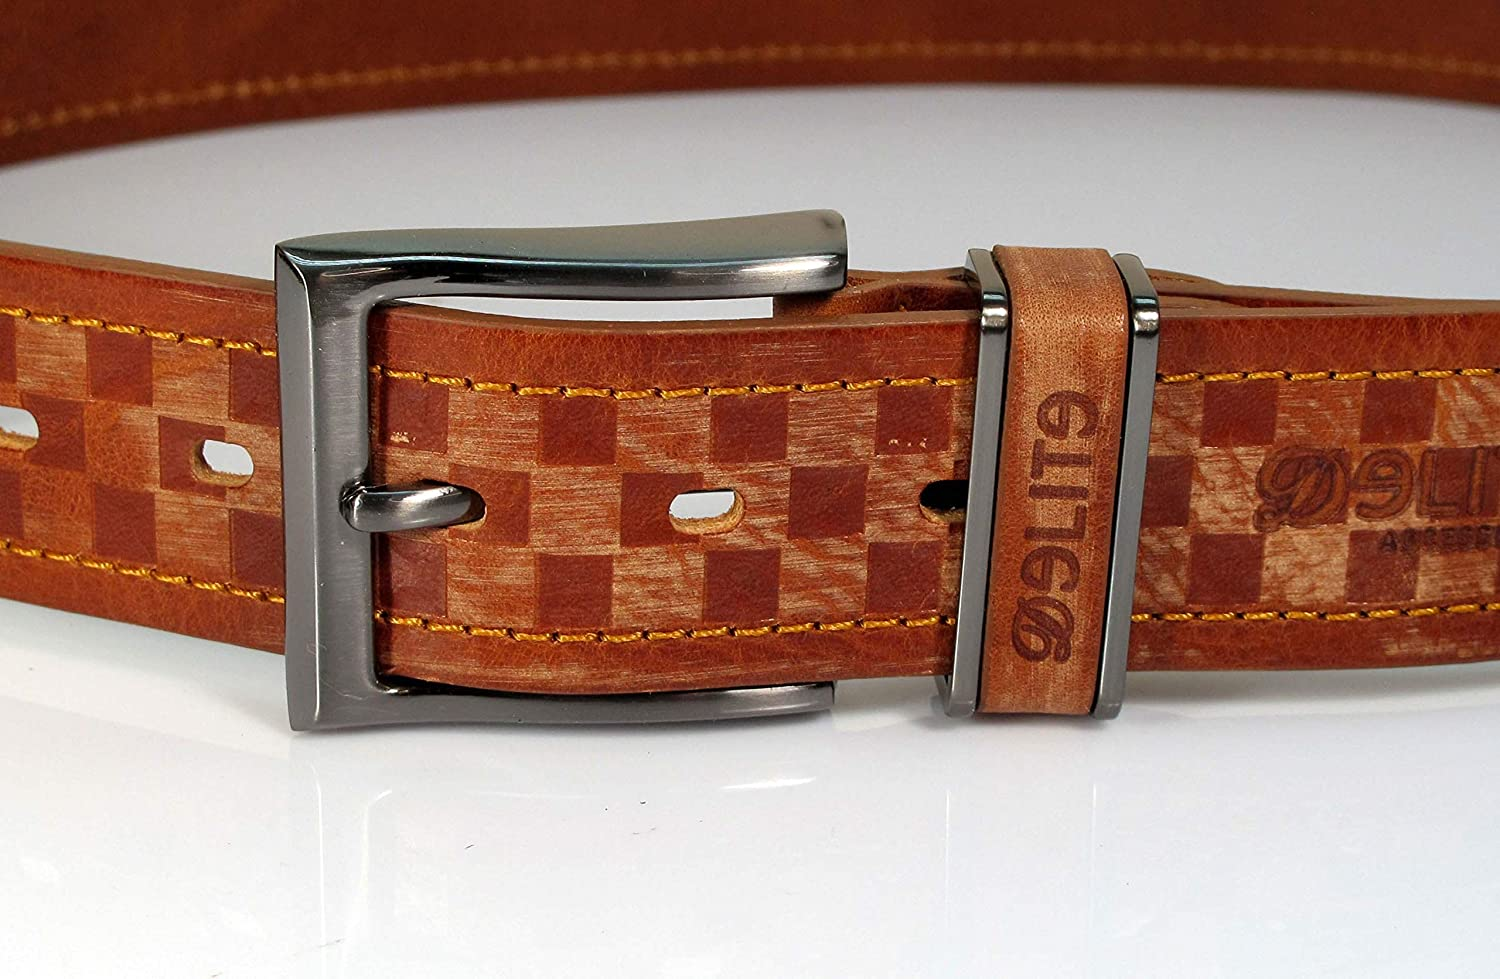 CW1 Womens Real Genuine Leather Tan Brown Belt 1.5 Wide S-XL Thick Casual Jeans